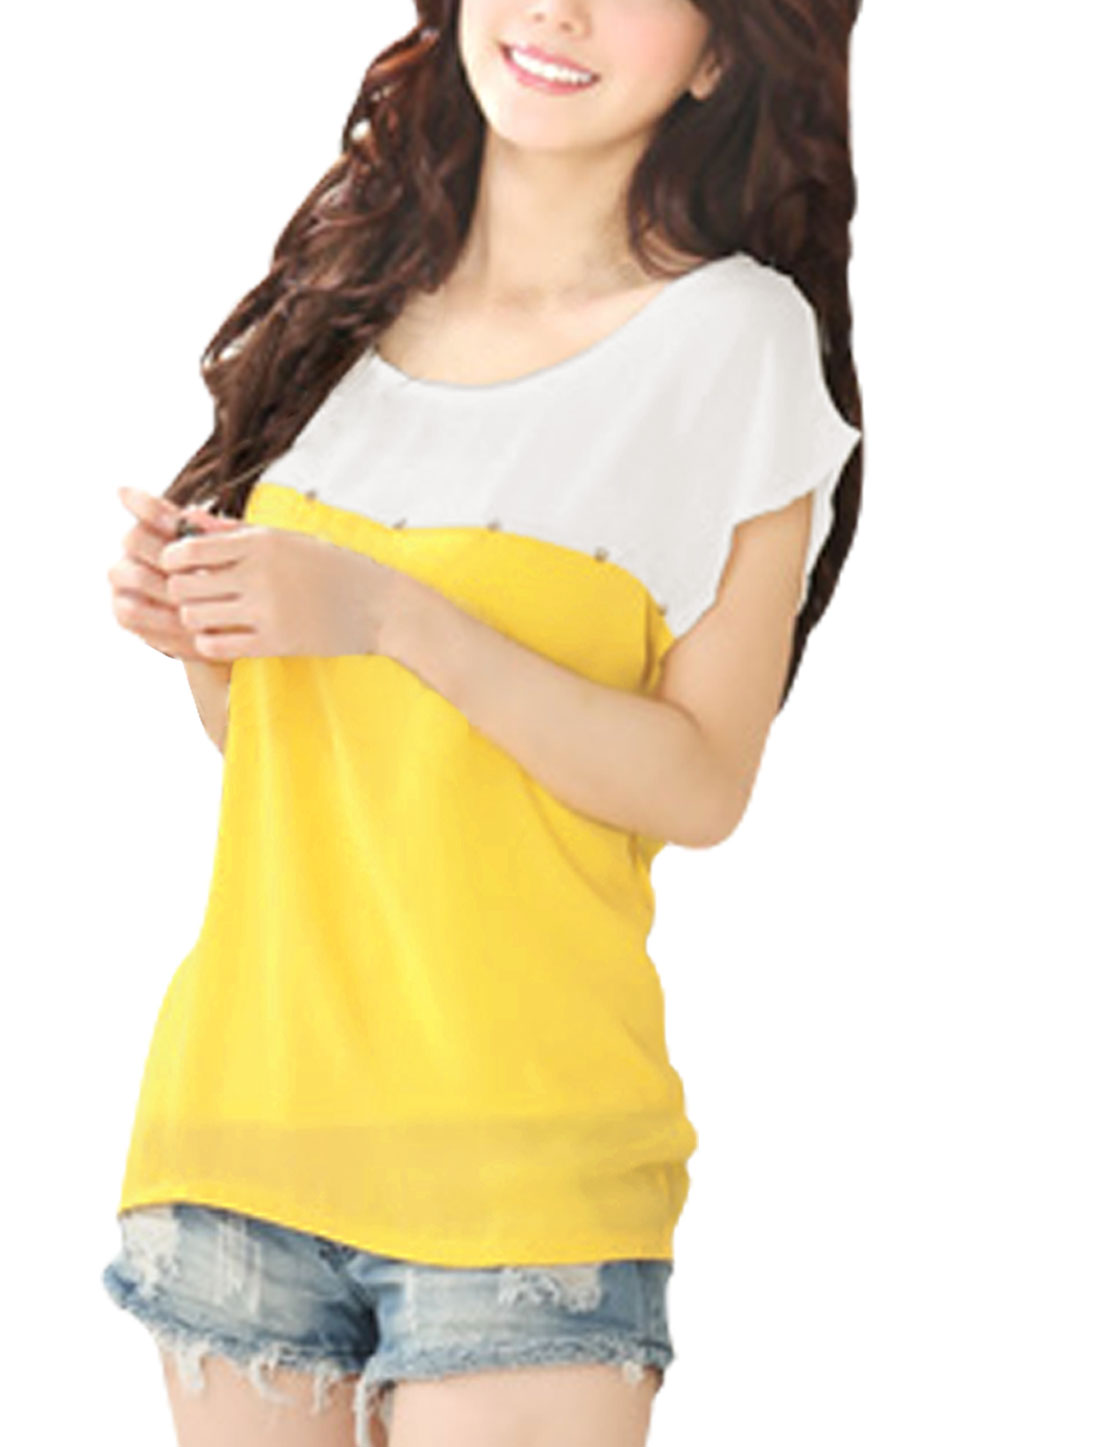 Ladies New Fashion Yellow White Two-Tone Splice Summer Blouse XS